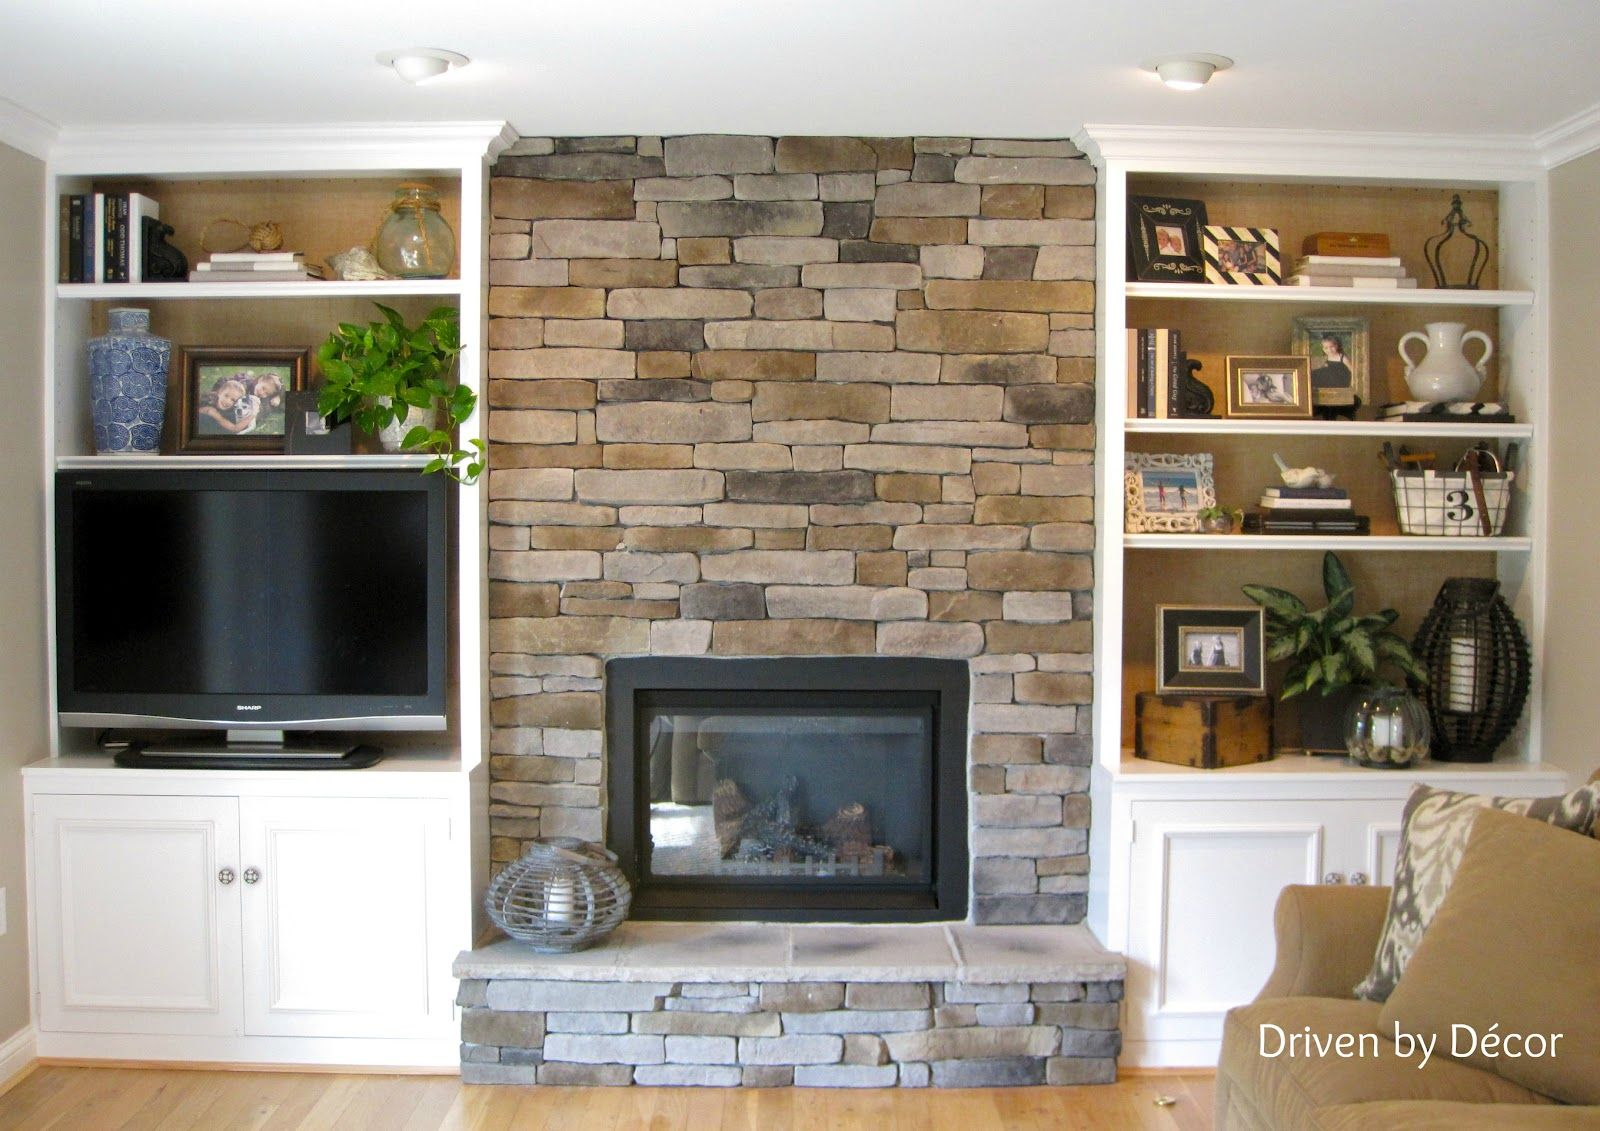 Designing A Stone Fireplace Tips For Getting It Right Driven By Decor Built In Around Fireplace Fireplace Bookcase Fireplace Built Ins